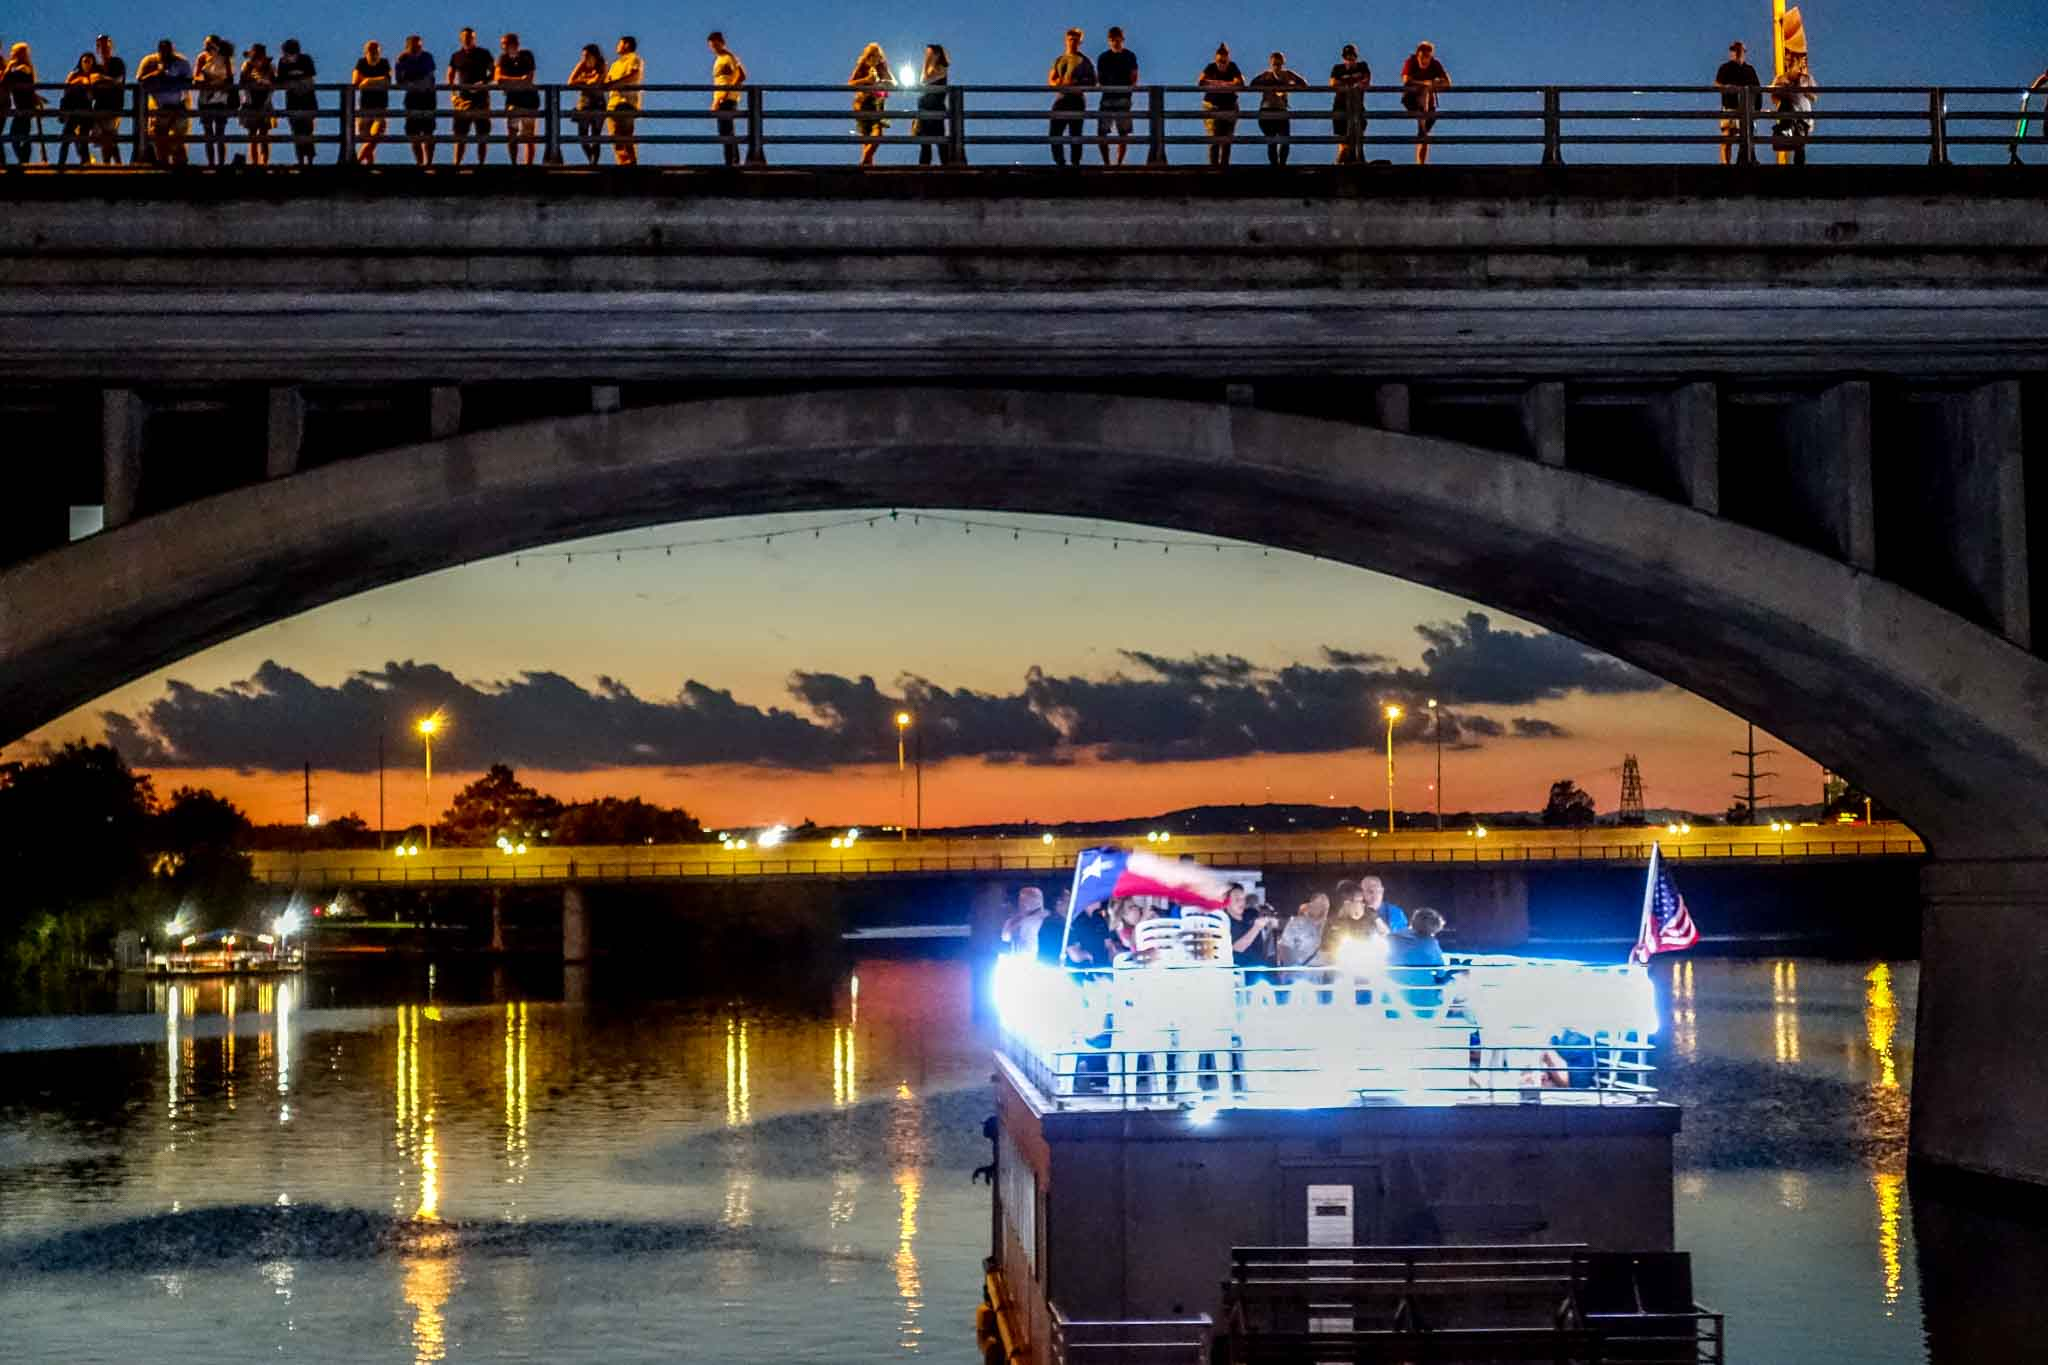 Boat under bridge with people standing above